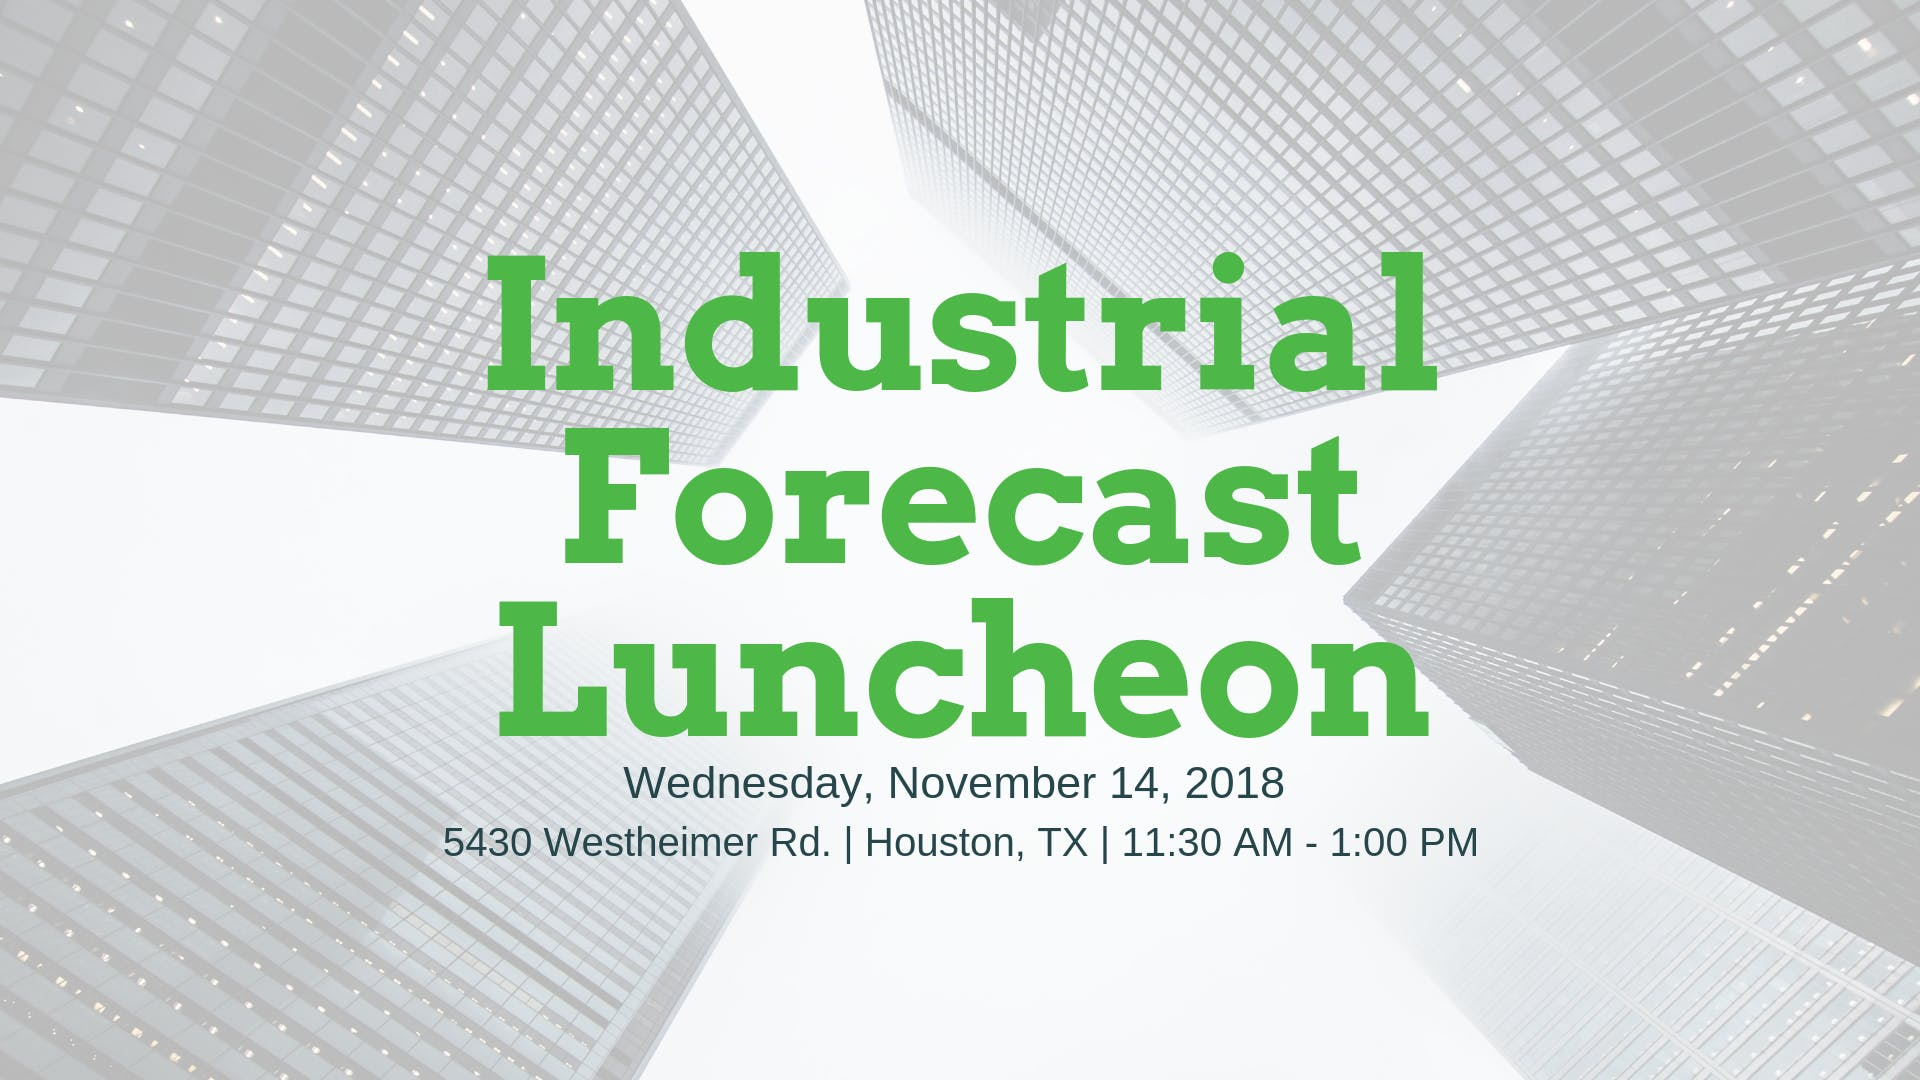 Industrial Forecast Luncheon